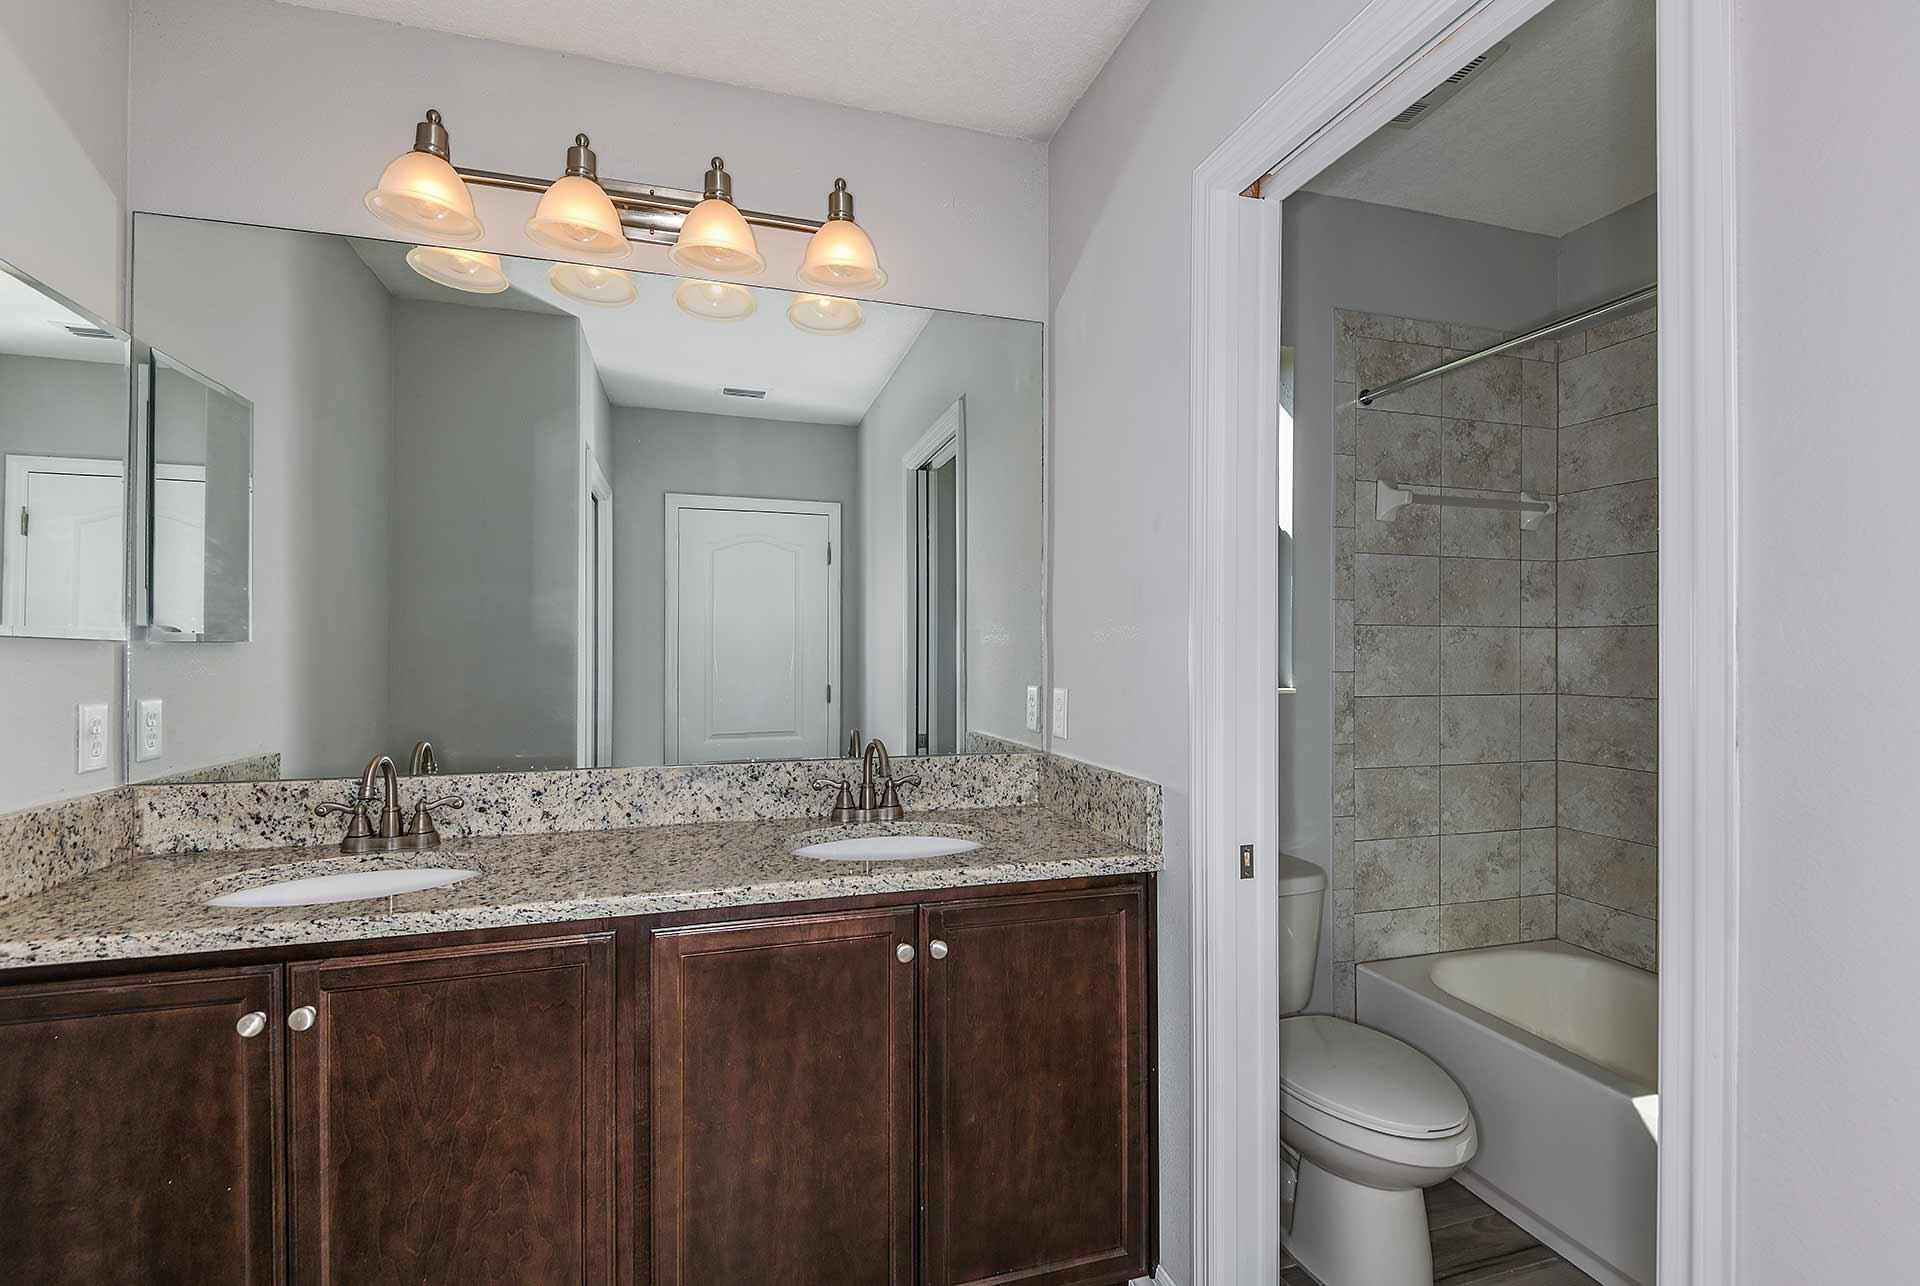 Bathroom featured in the Briarwood By Mobley Homes in Tampa-St. Petersburg, FL